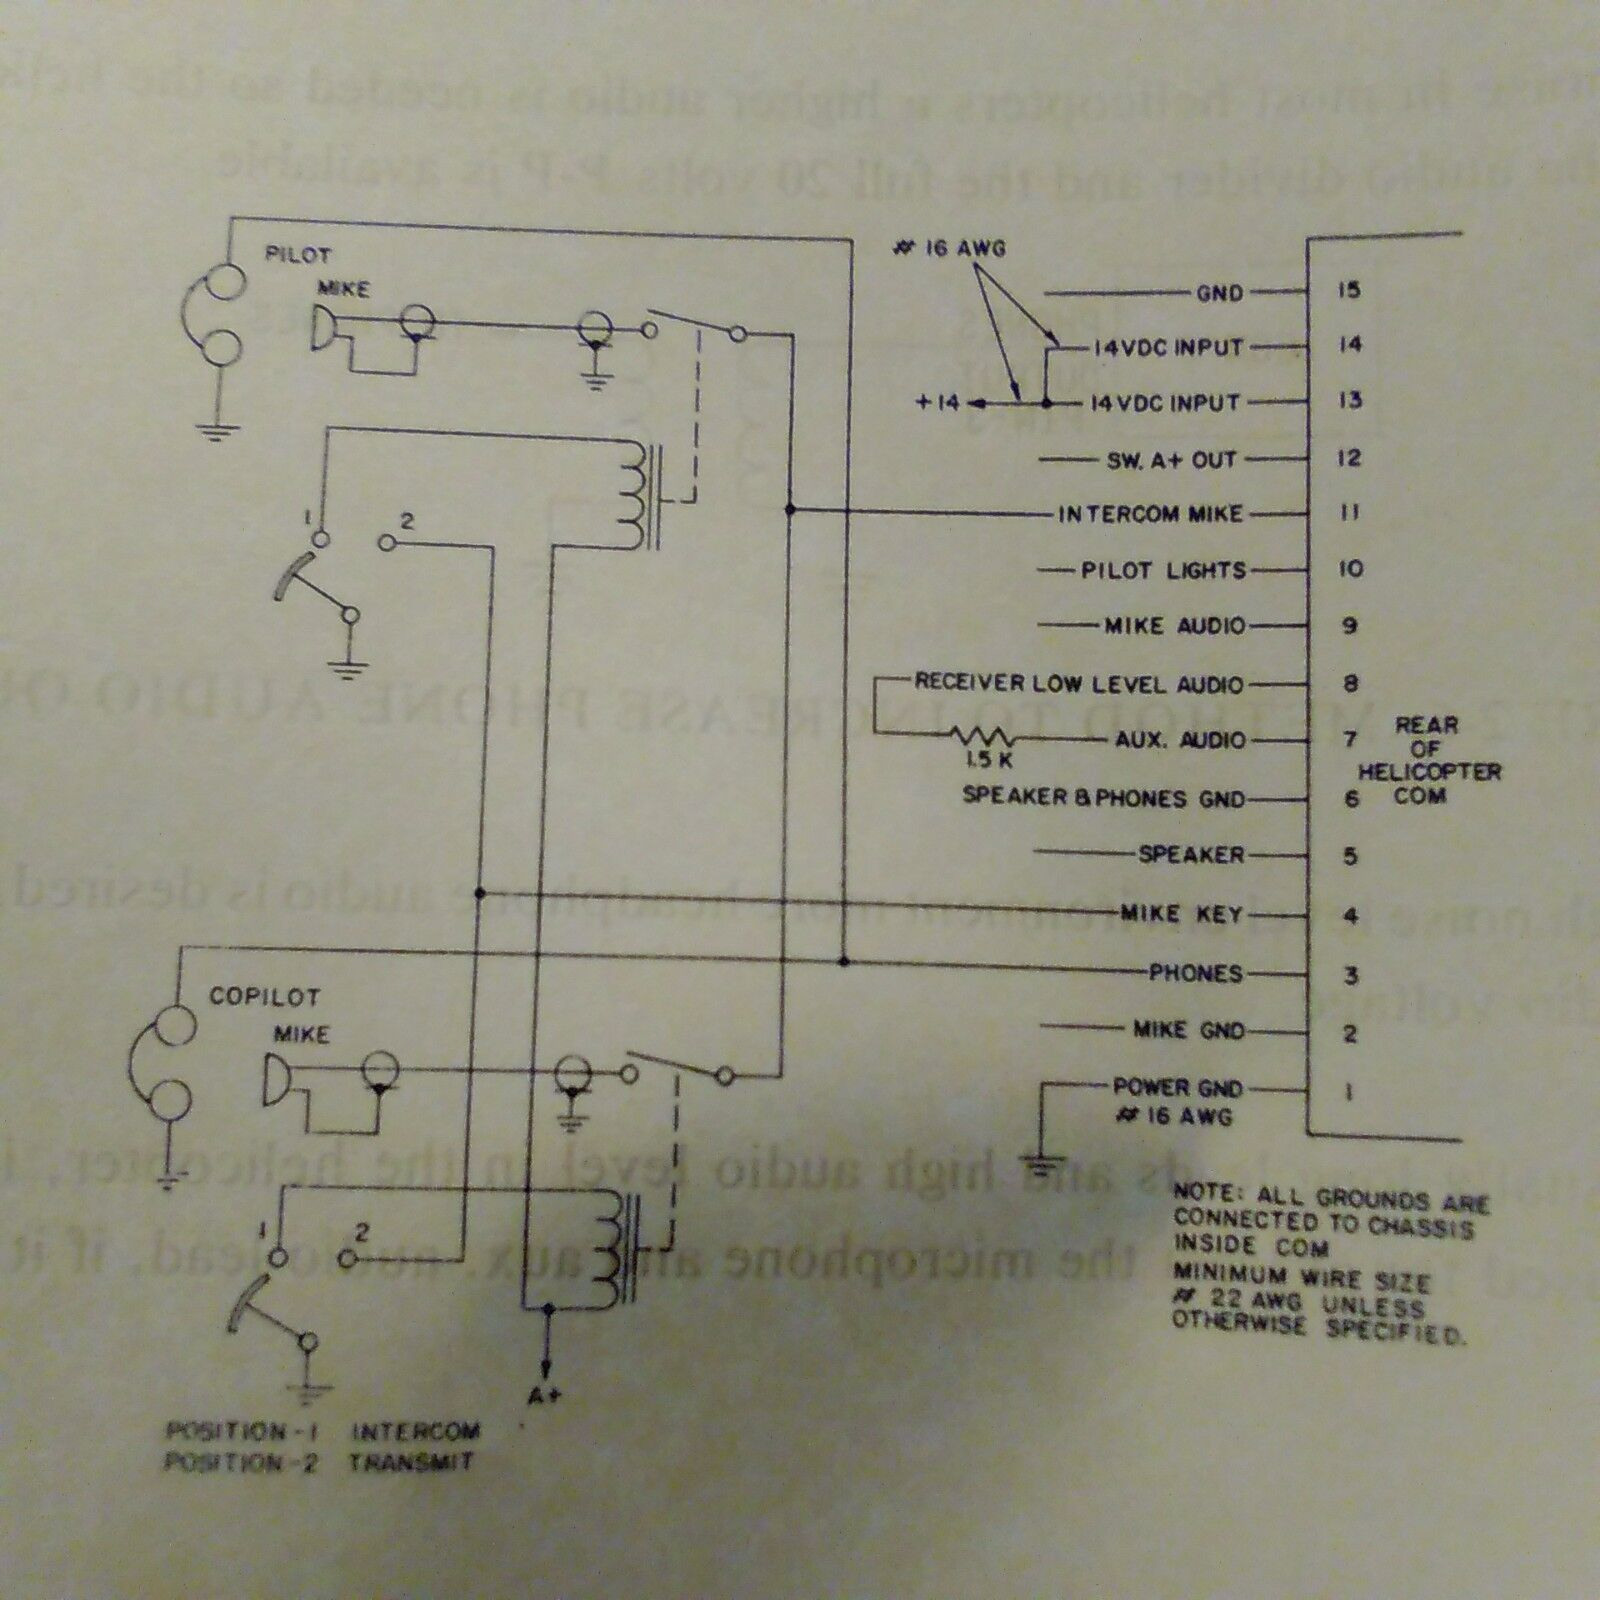 Yale Hsa3095 Manual Ebook Inncom E528 Wiring Diagram Room Array Rh Zettadata Solutions